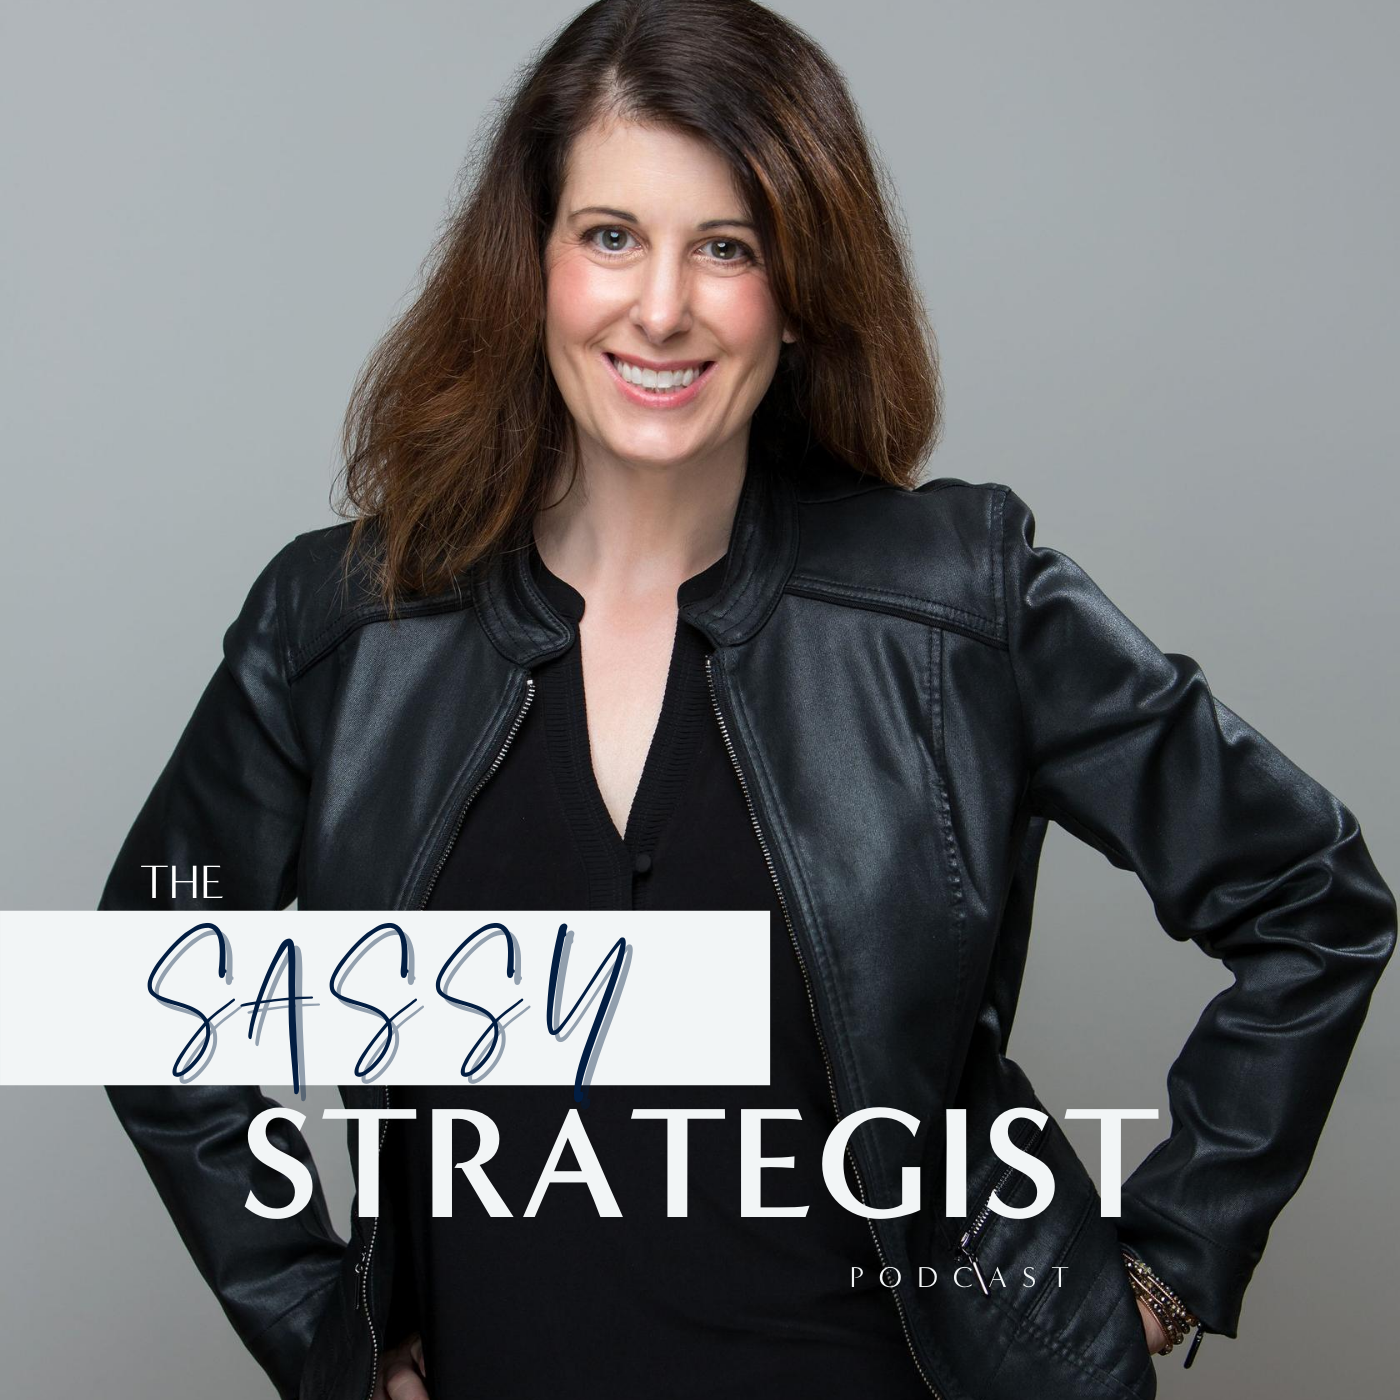 The Sassy Strategist: Build Your Business, Grow Your Profits, and Discover How To Succeed As A Small Business Entrepreneur show image